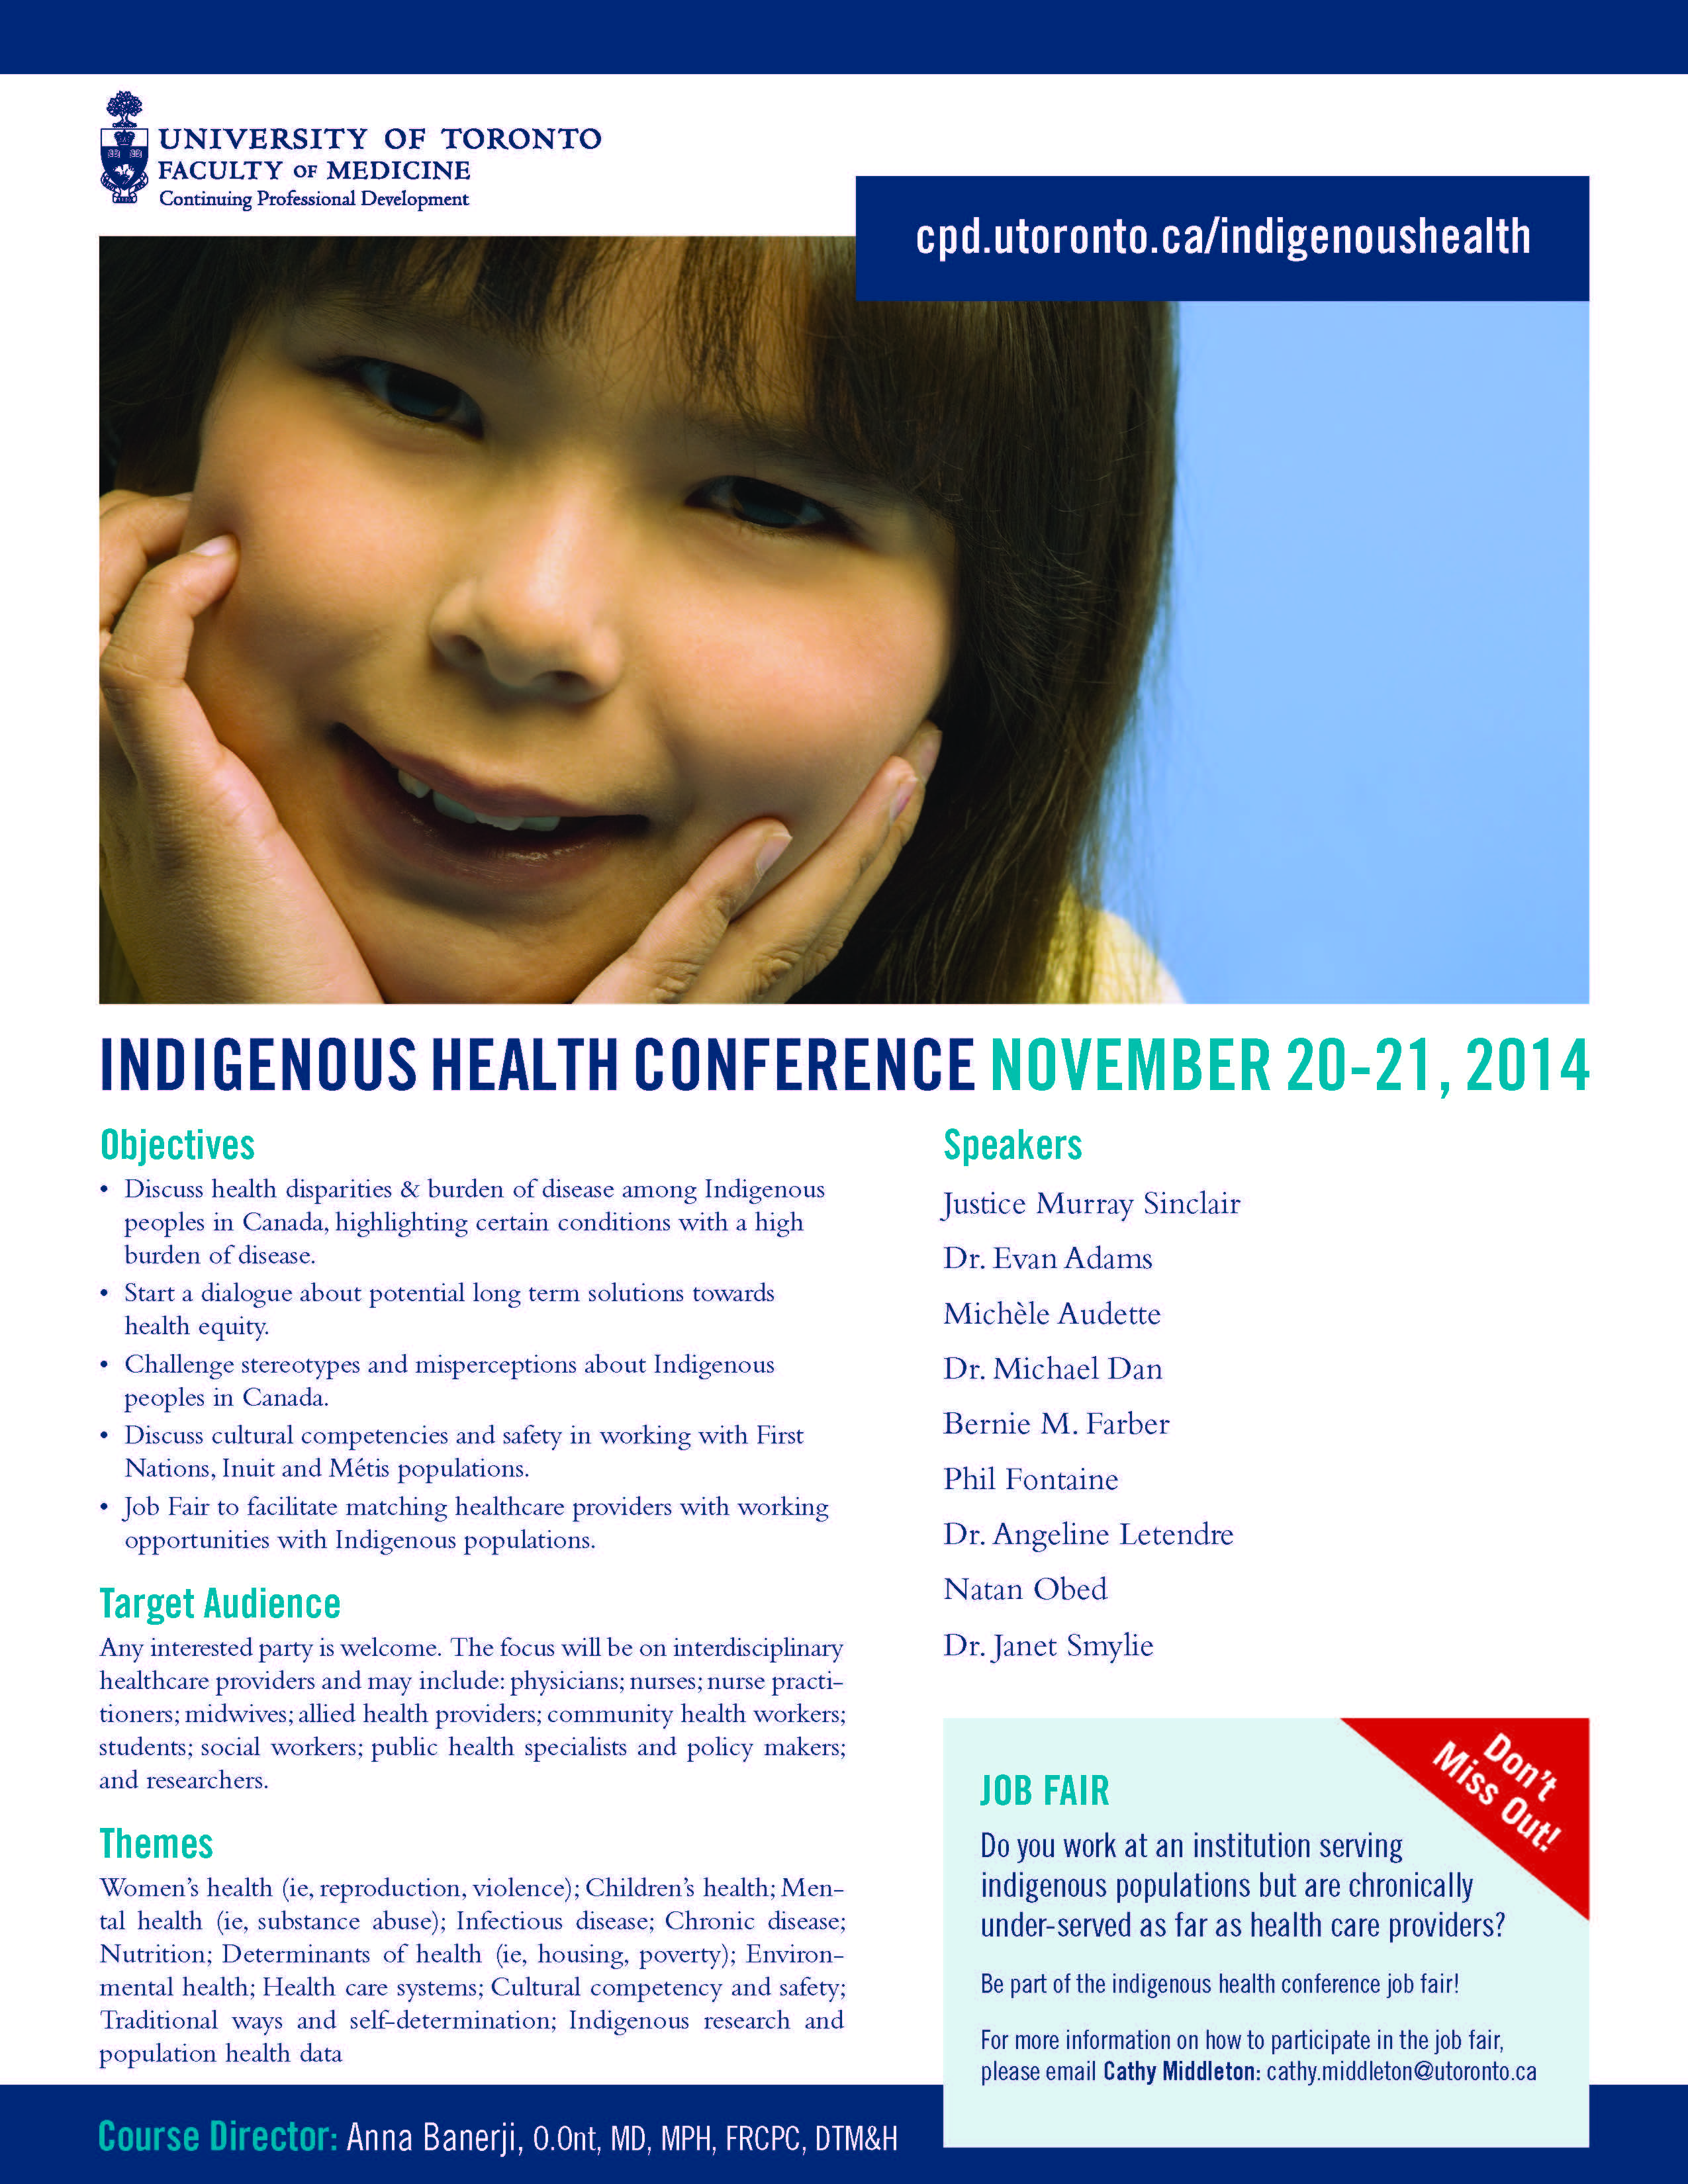 UofT Indigenous Health Conference Poster